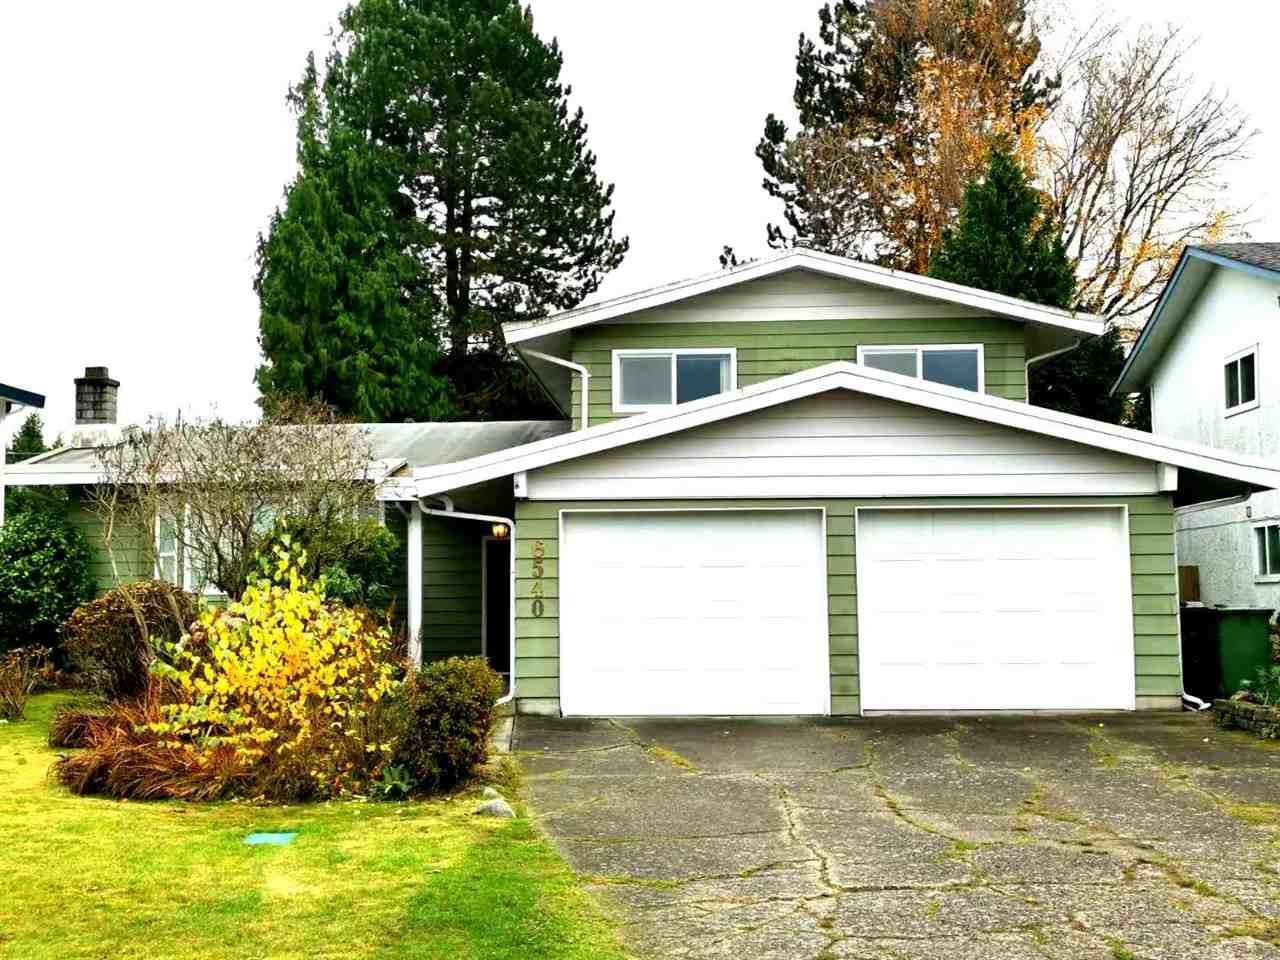 Main Photo: 6540 YEATS Crescent in Richmond: Woodwards House for sale : MLS®# R2520205